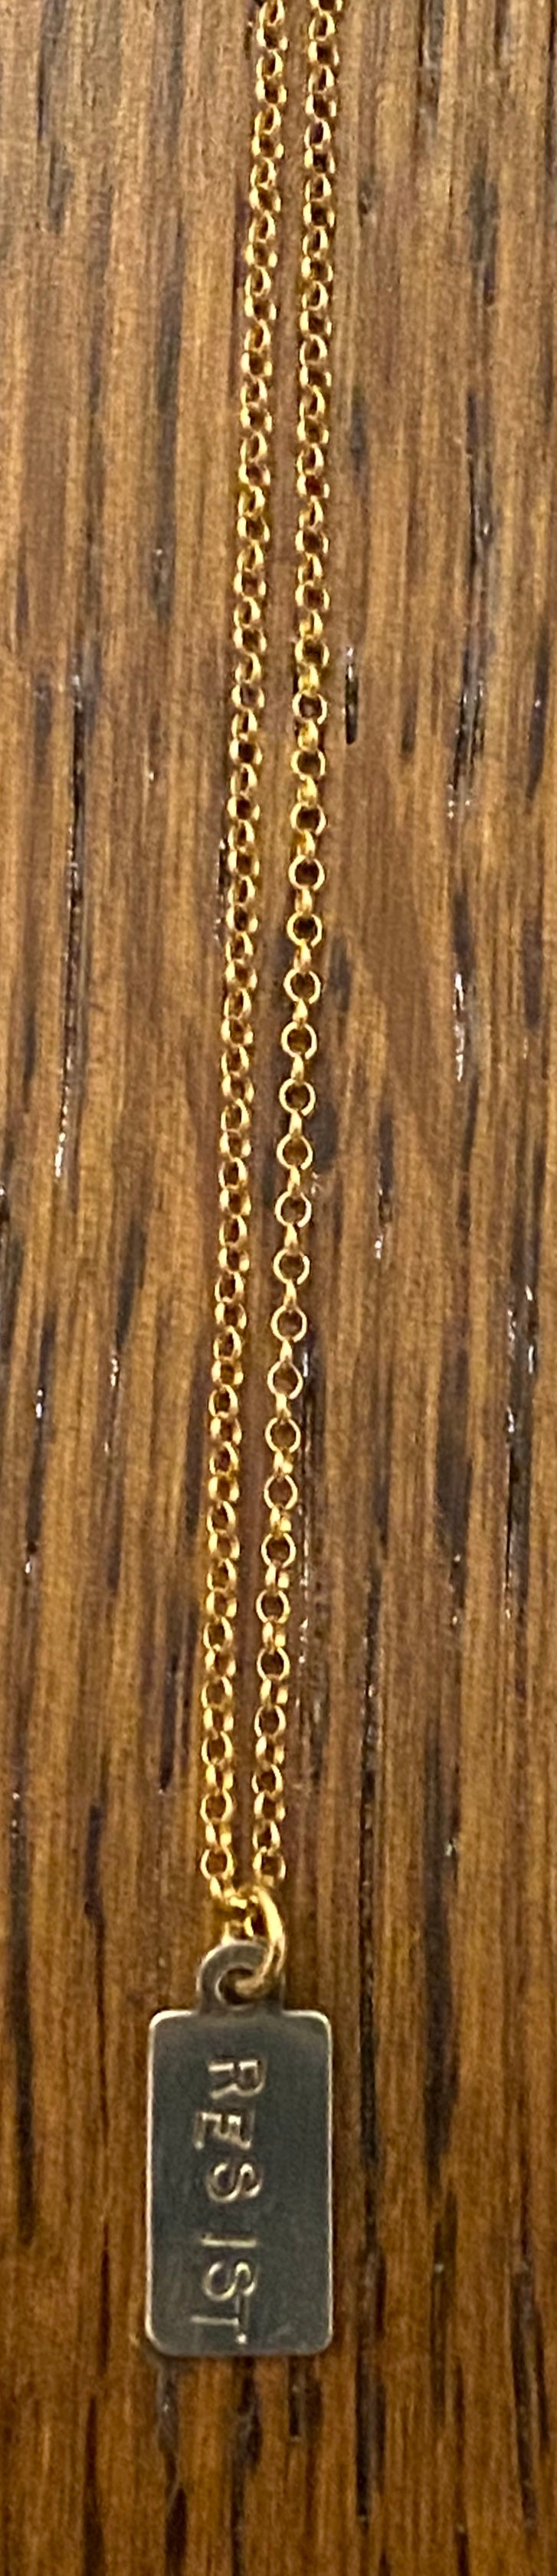 Stamped resist necklace